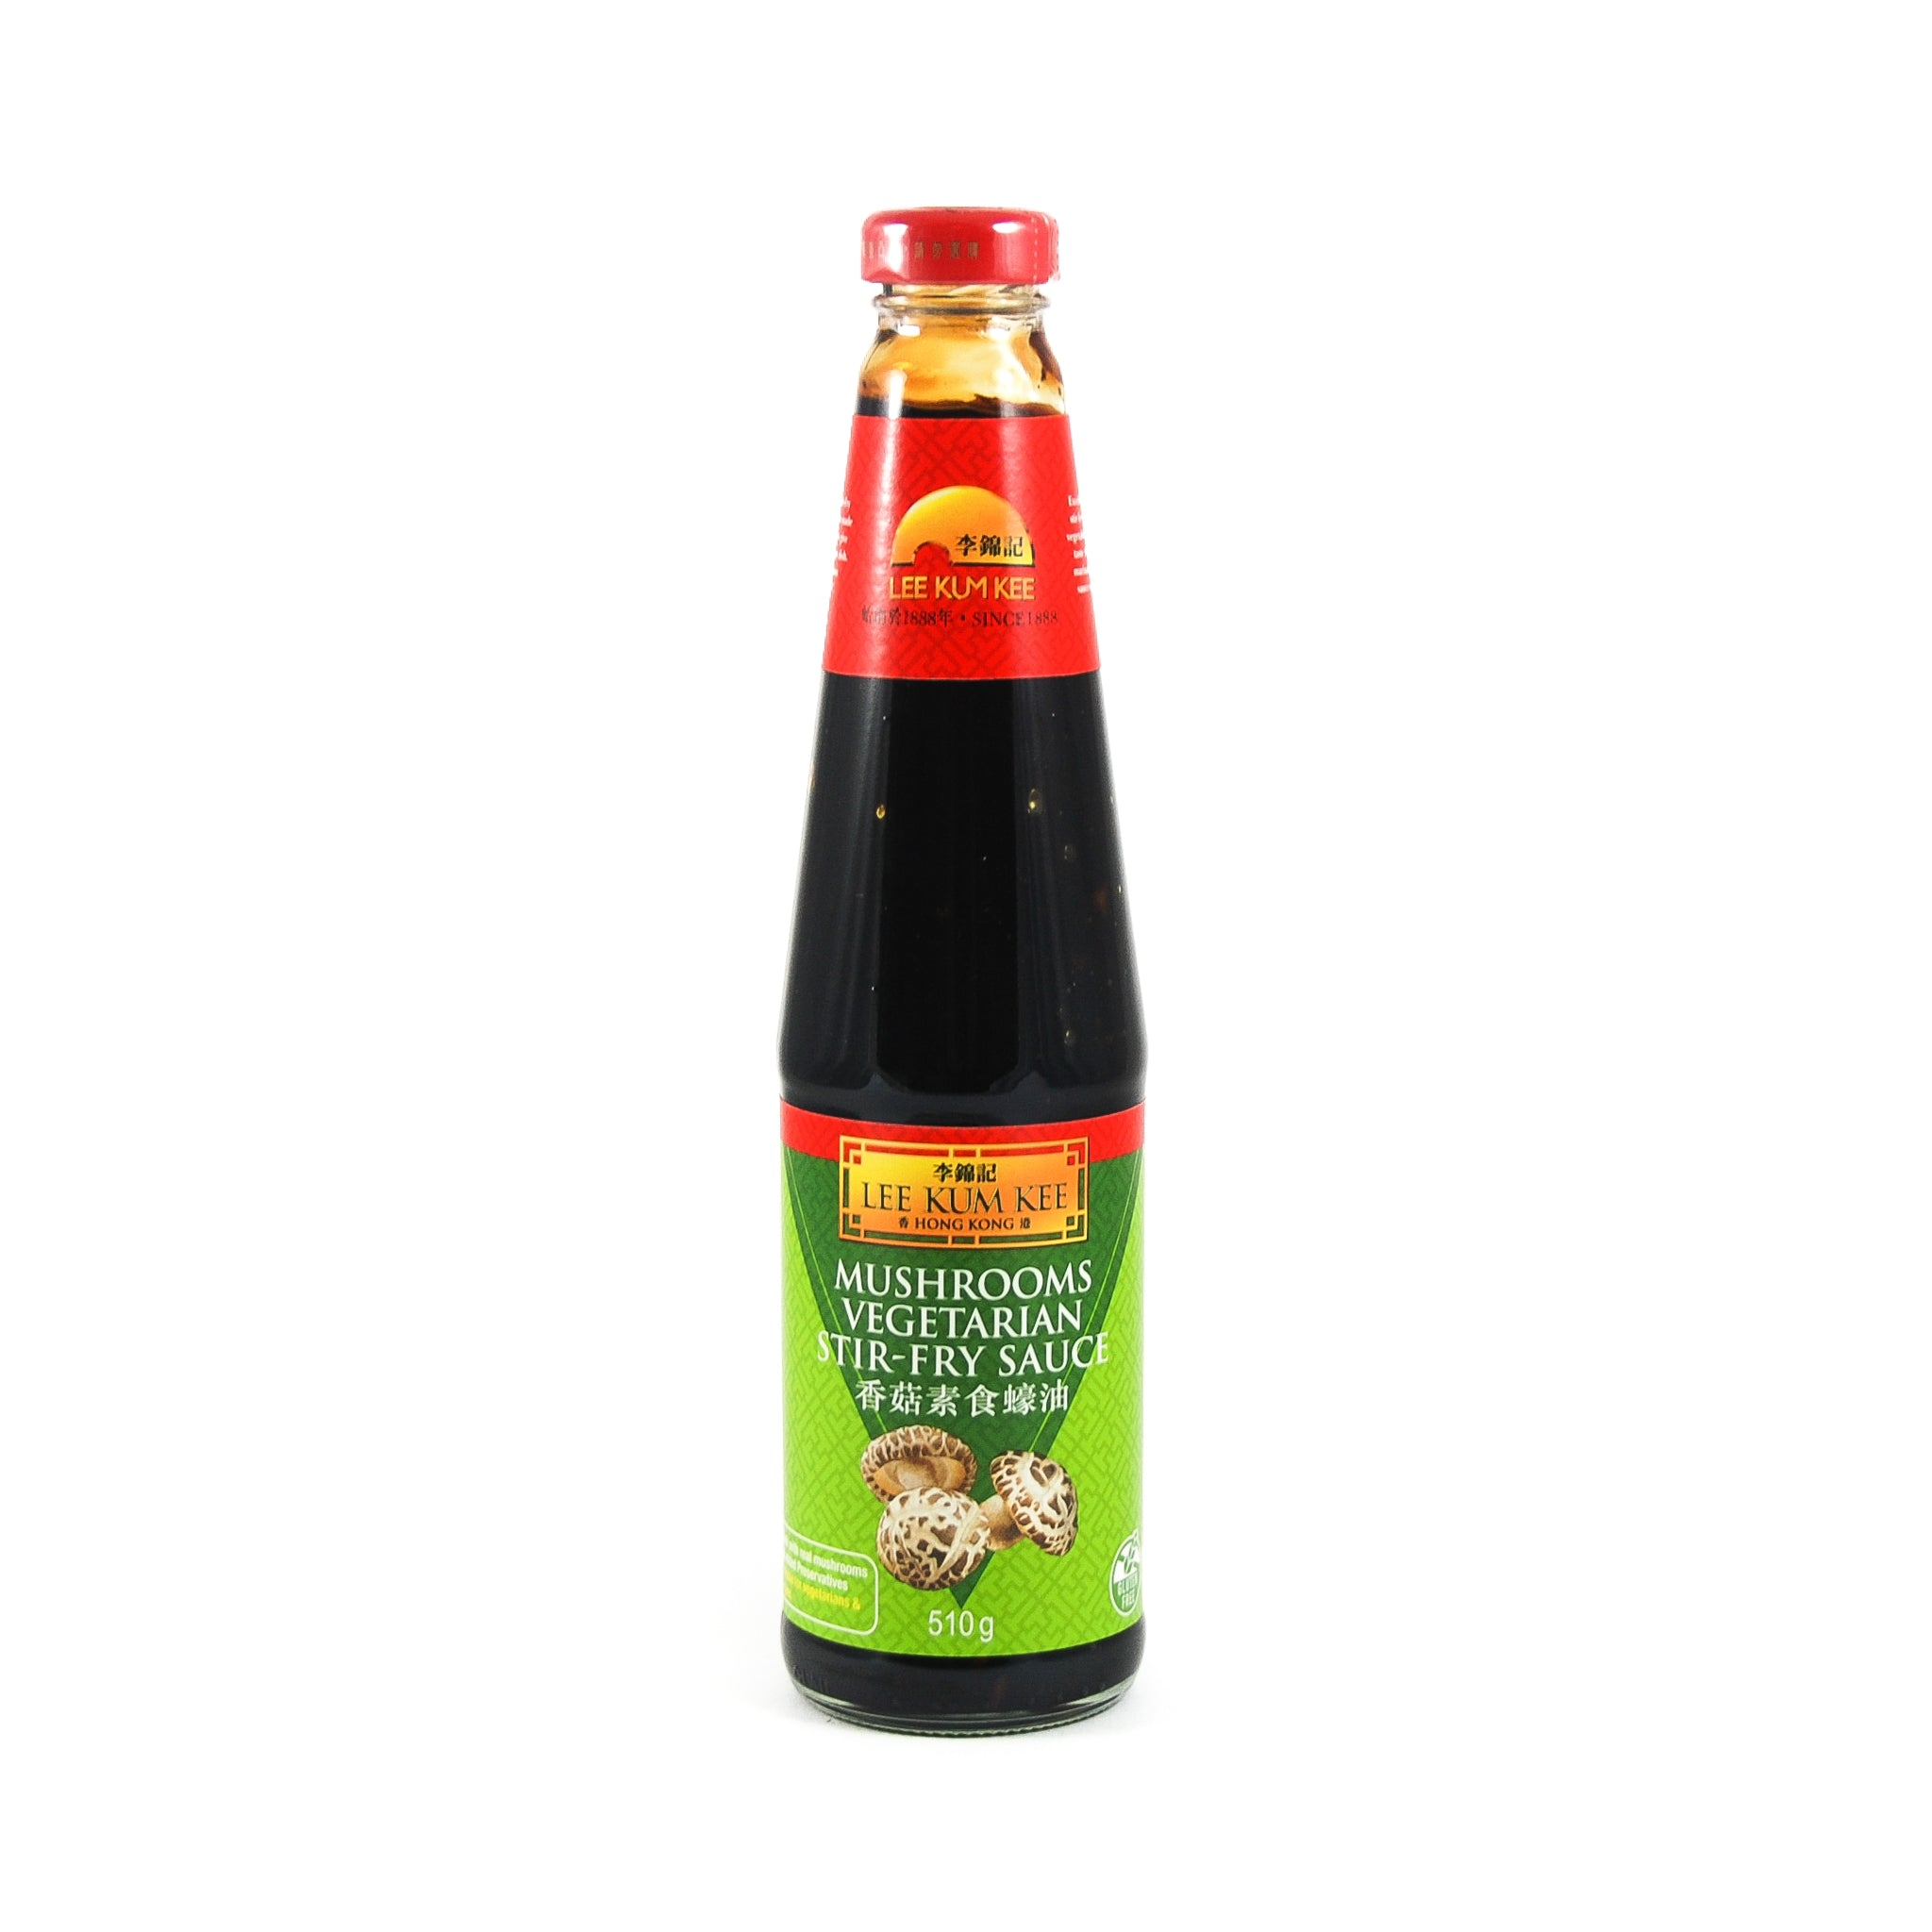 Lee Kum Kee Vegetarian Stir-Fry Sauce 510g Ingredients Sauces & Condiments Asian Sauces & Condiments Chinese Food